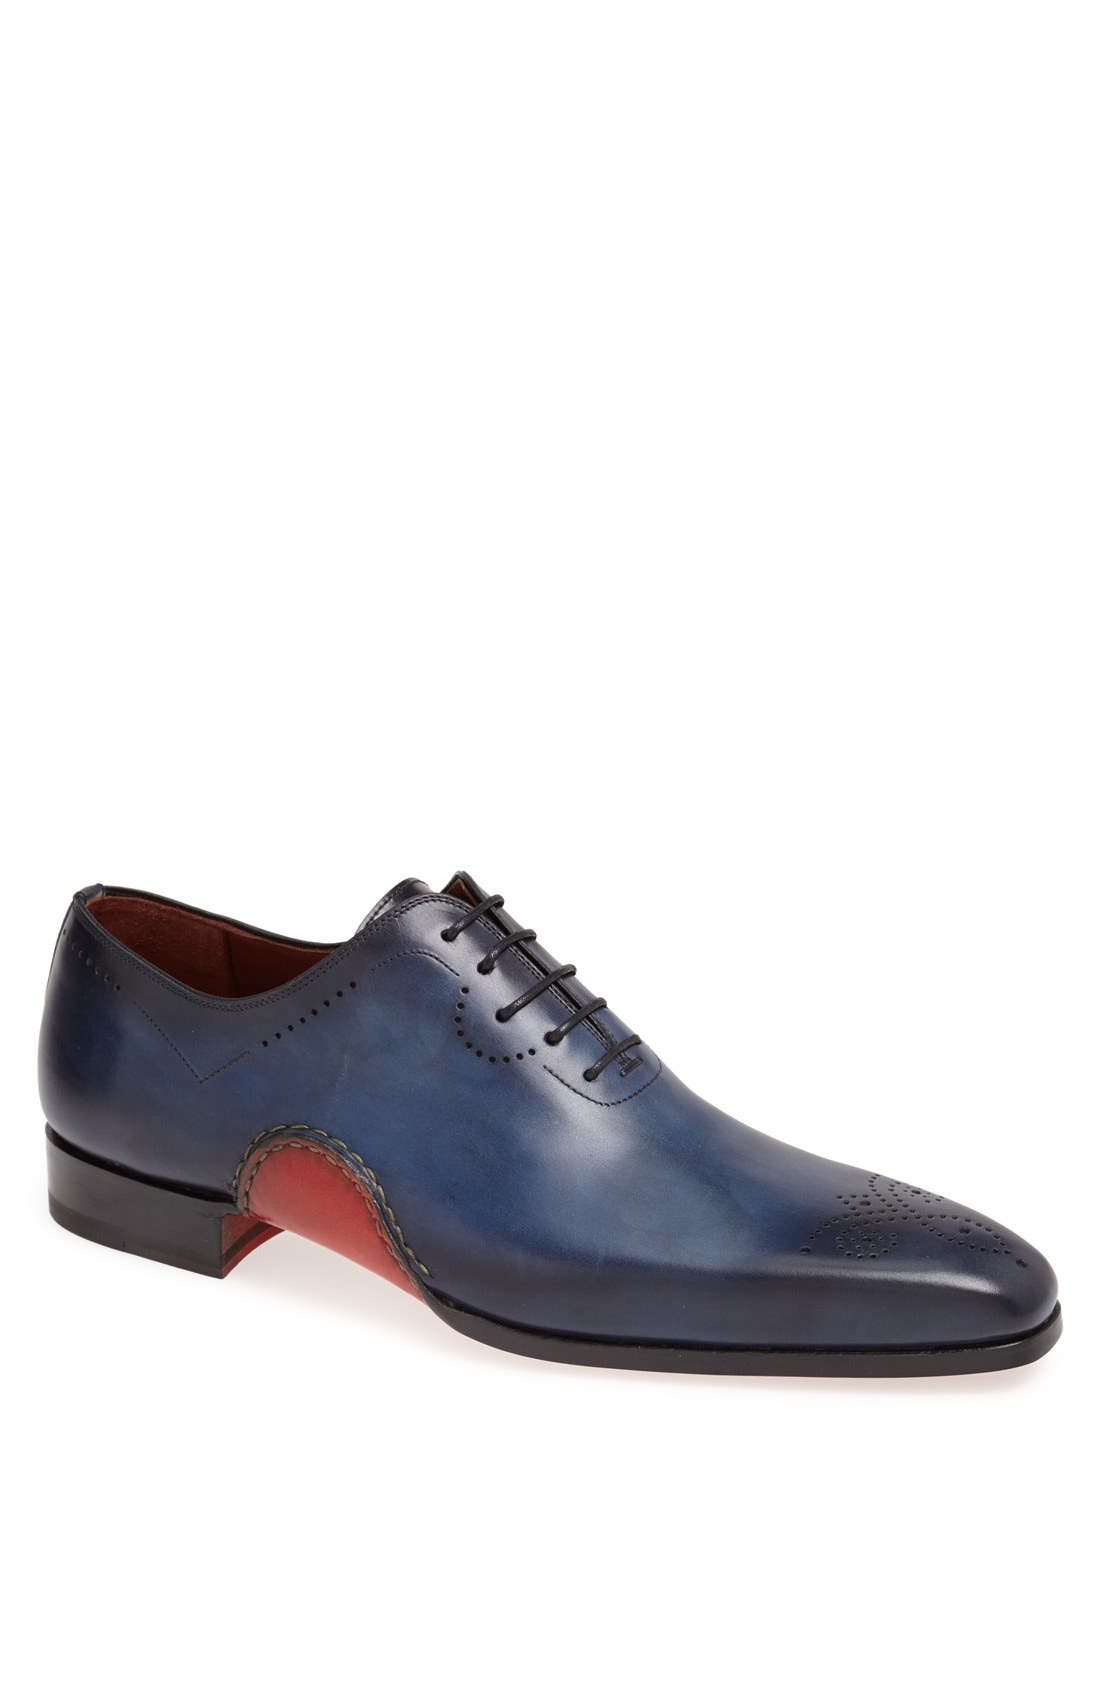 MAGNANNI 'Vito' Medallion Toe Leather Oxford